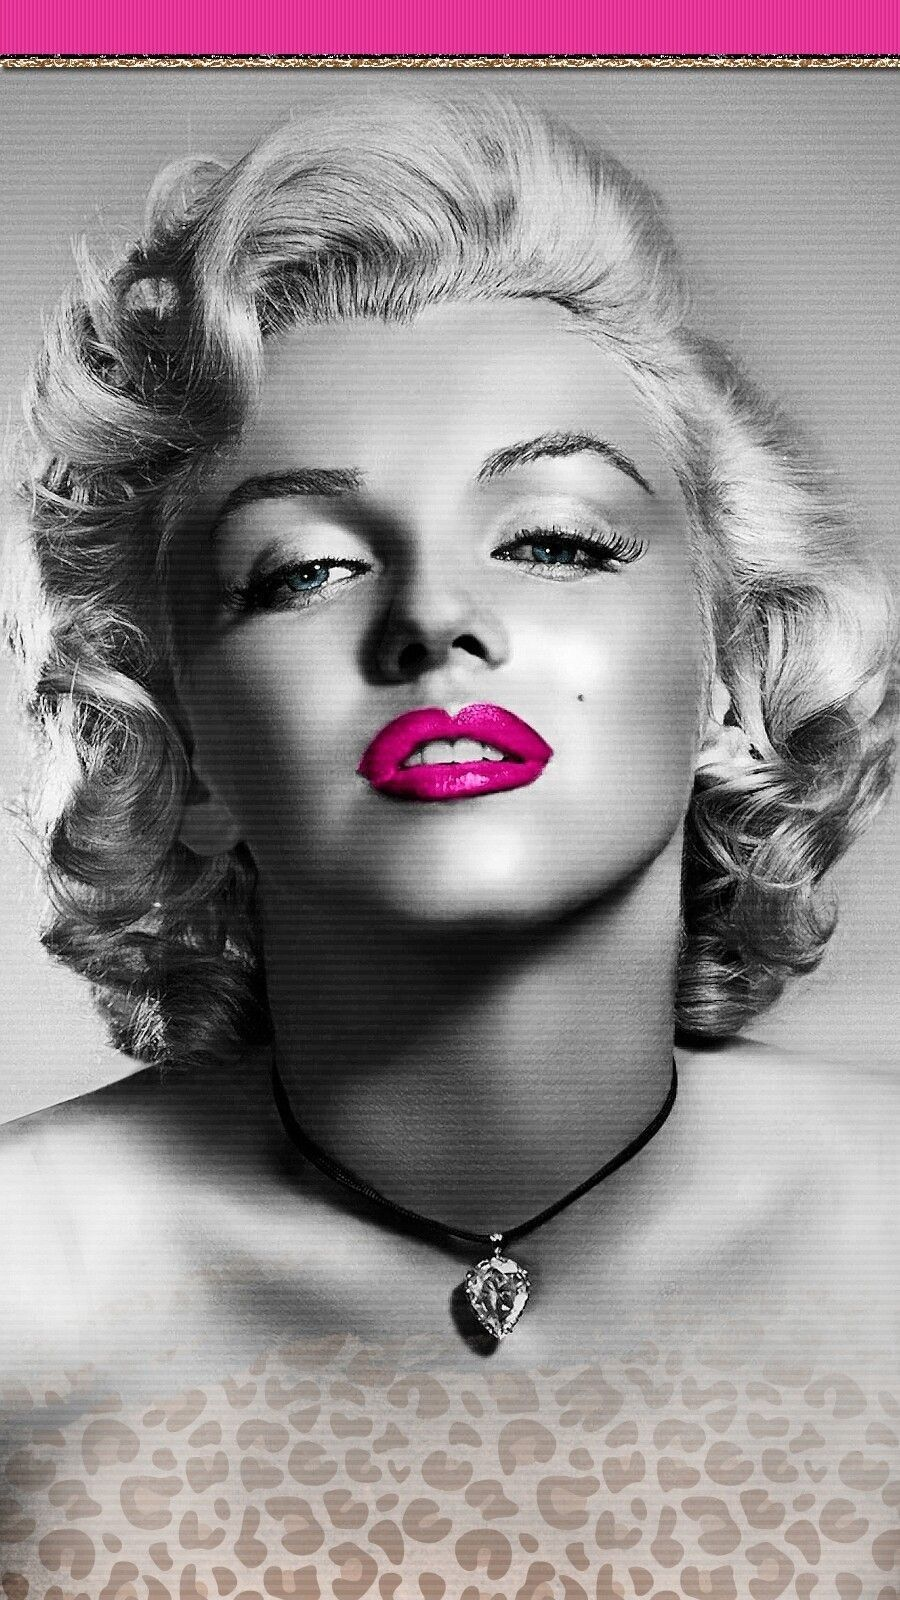 Pin By Tania Karina On Wallpaper Marilyn Monroe Wallpaper